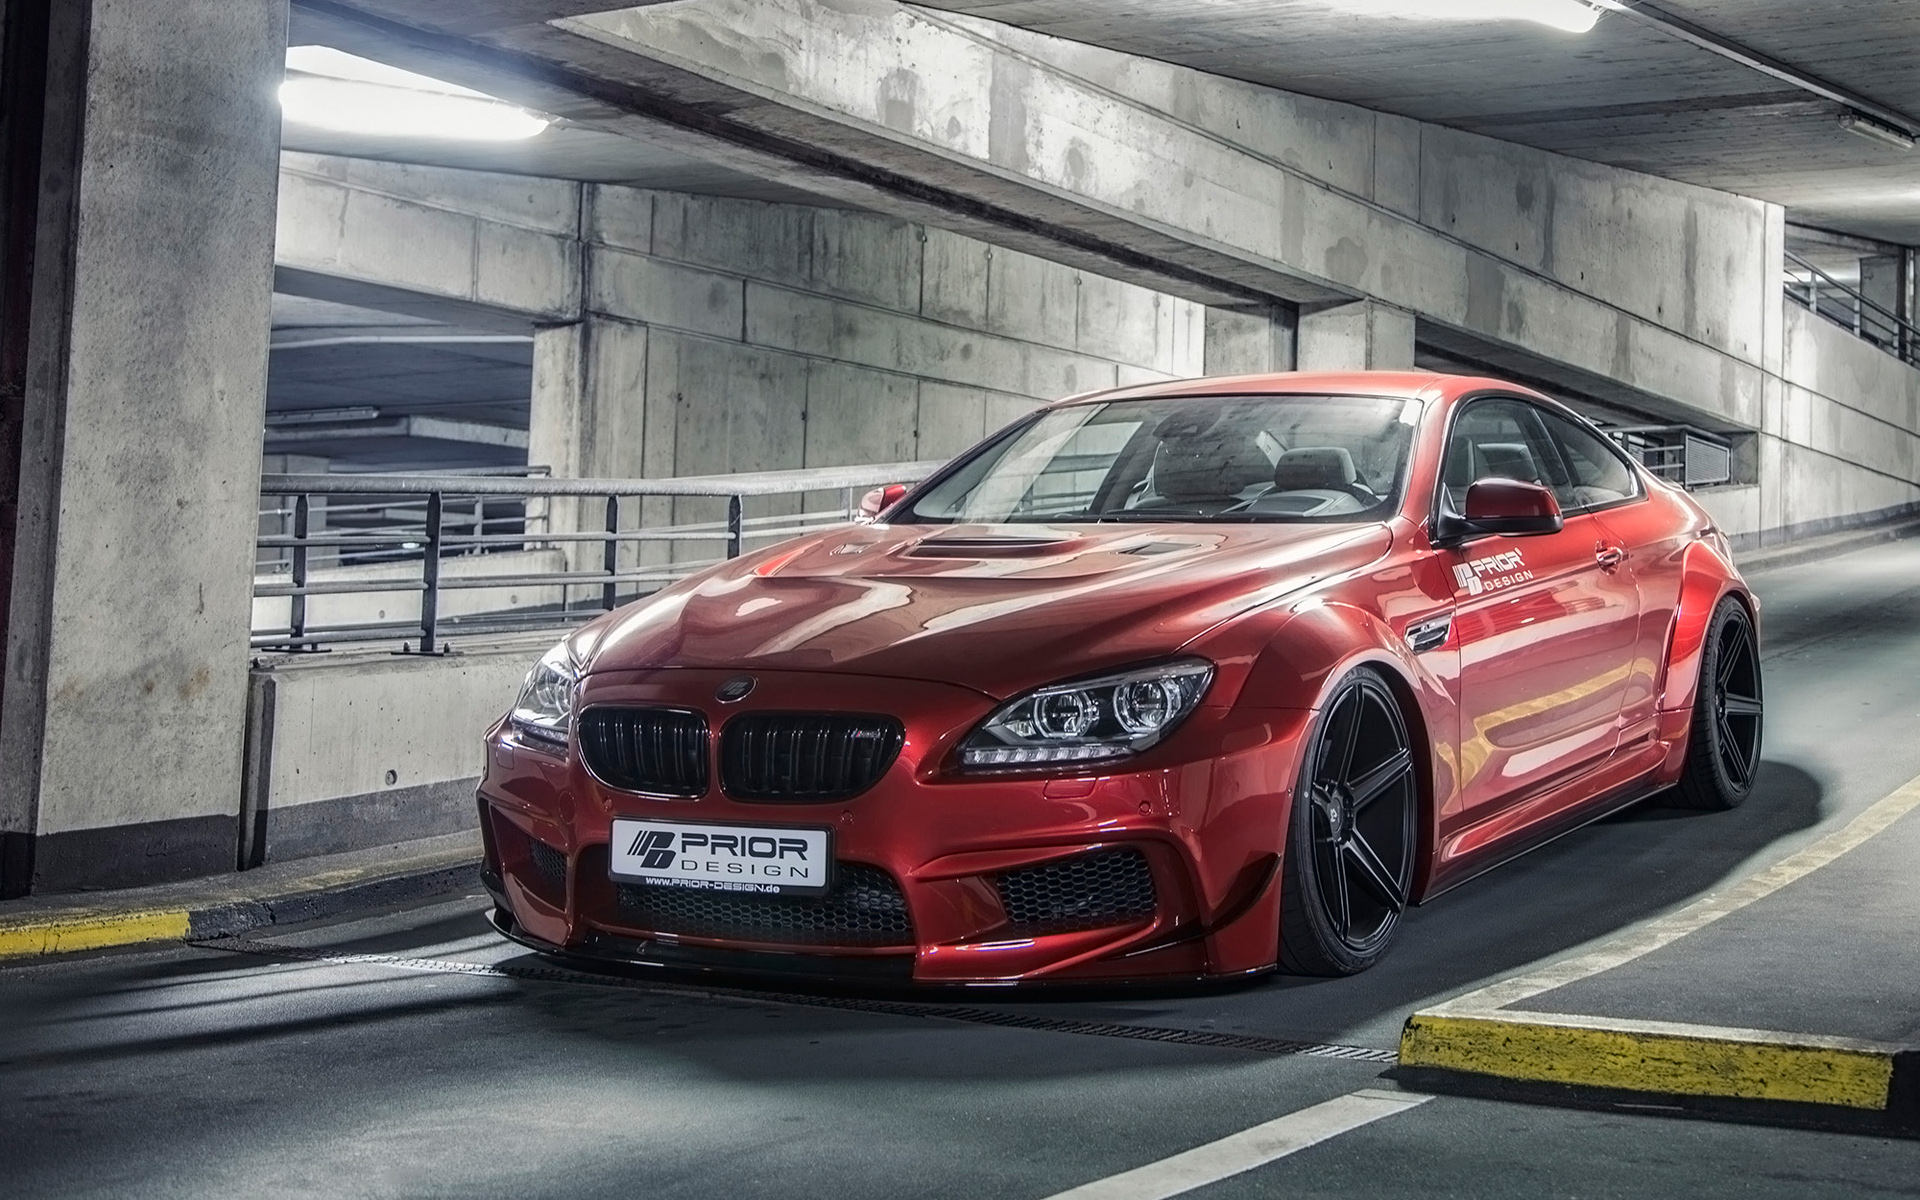 2014 BMW 6 Series Gran Coupe - Information and photos - ZombieDrive